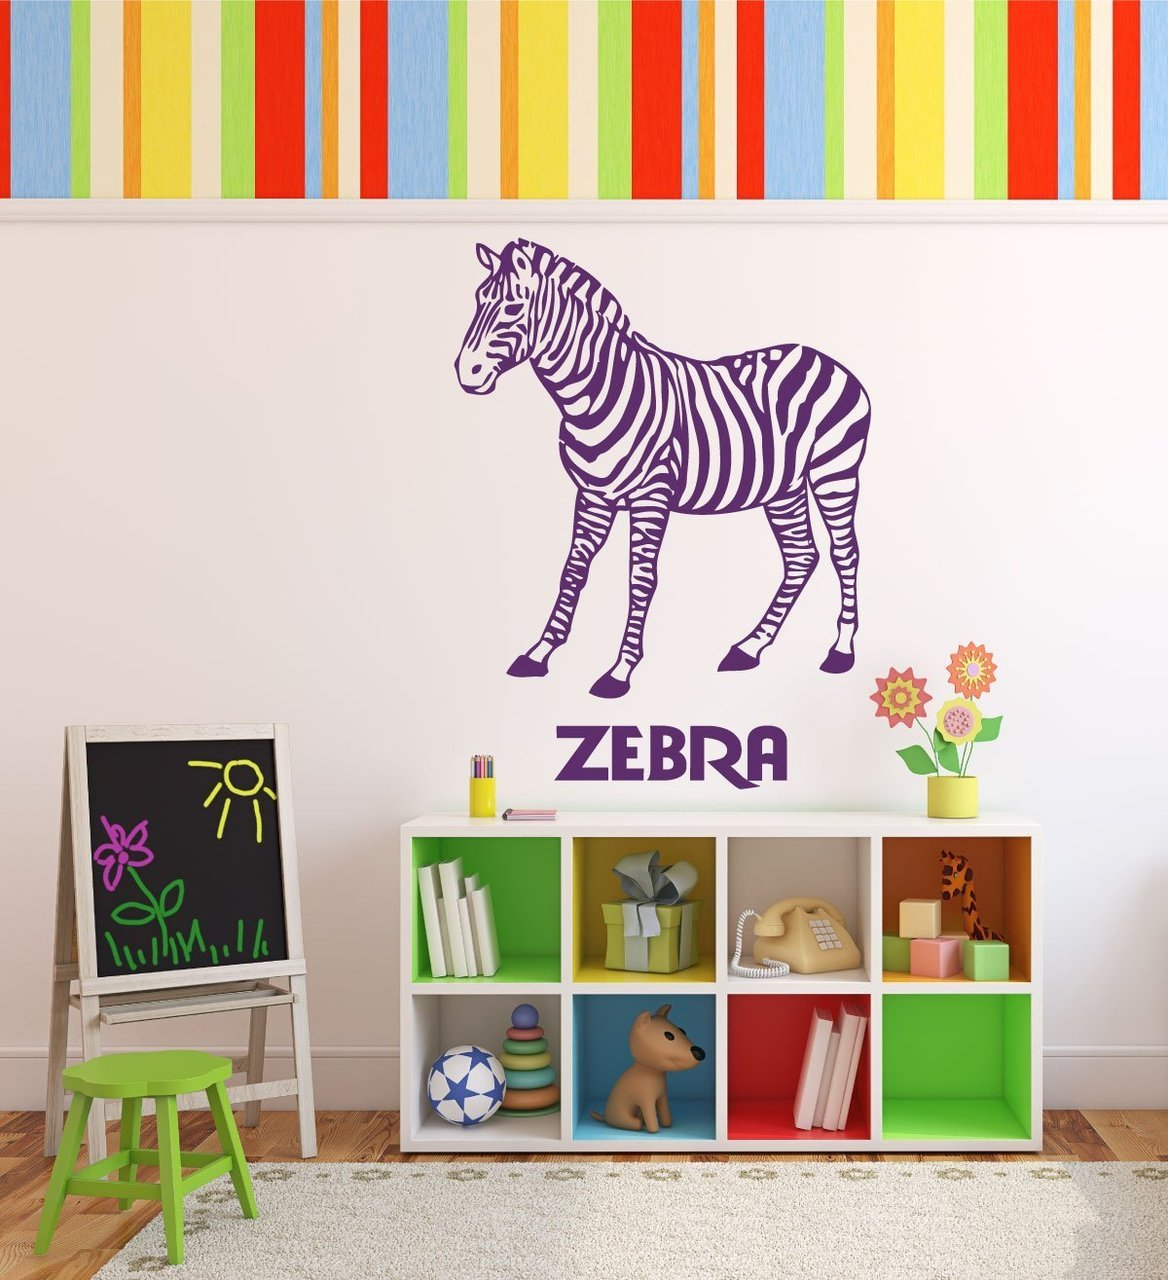 Zoo Animal Wall Decals Zebras Zoo Animal Party Supplies - Zoo animal wall decals